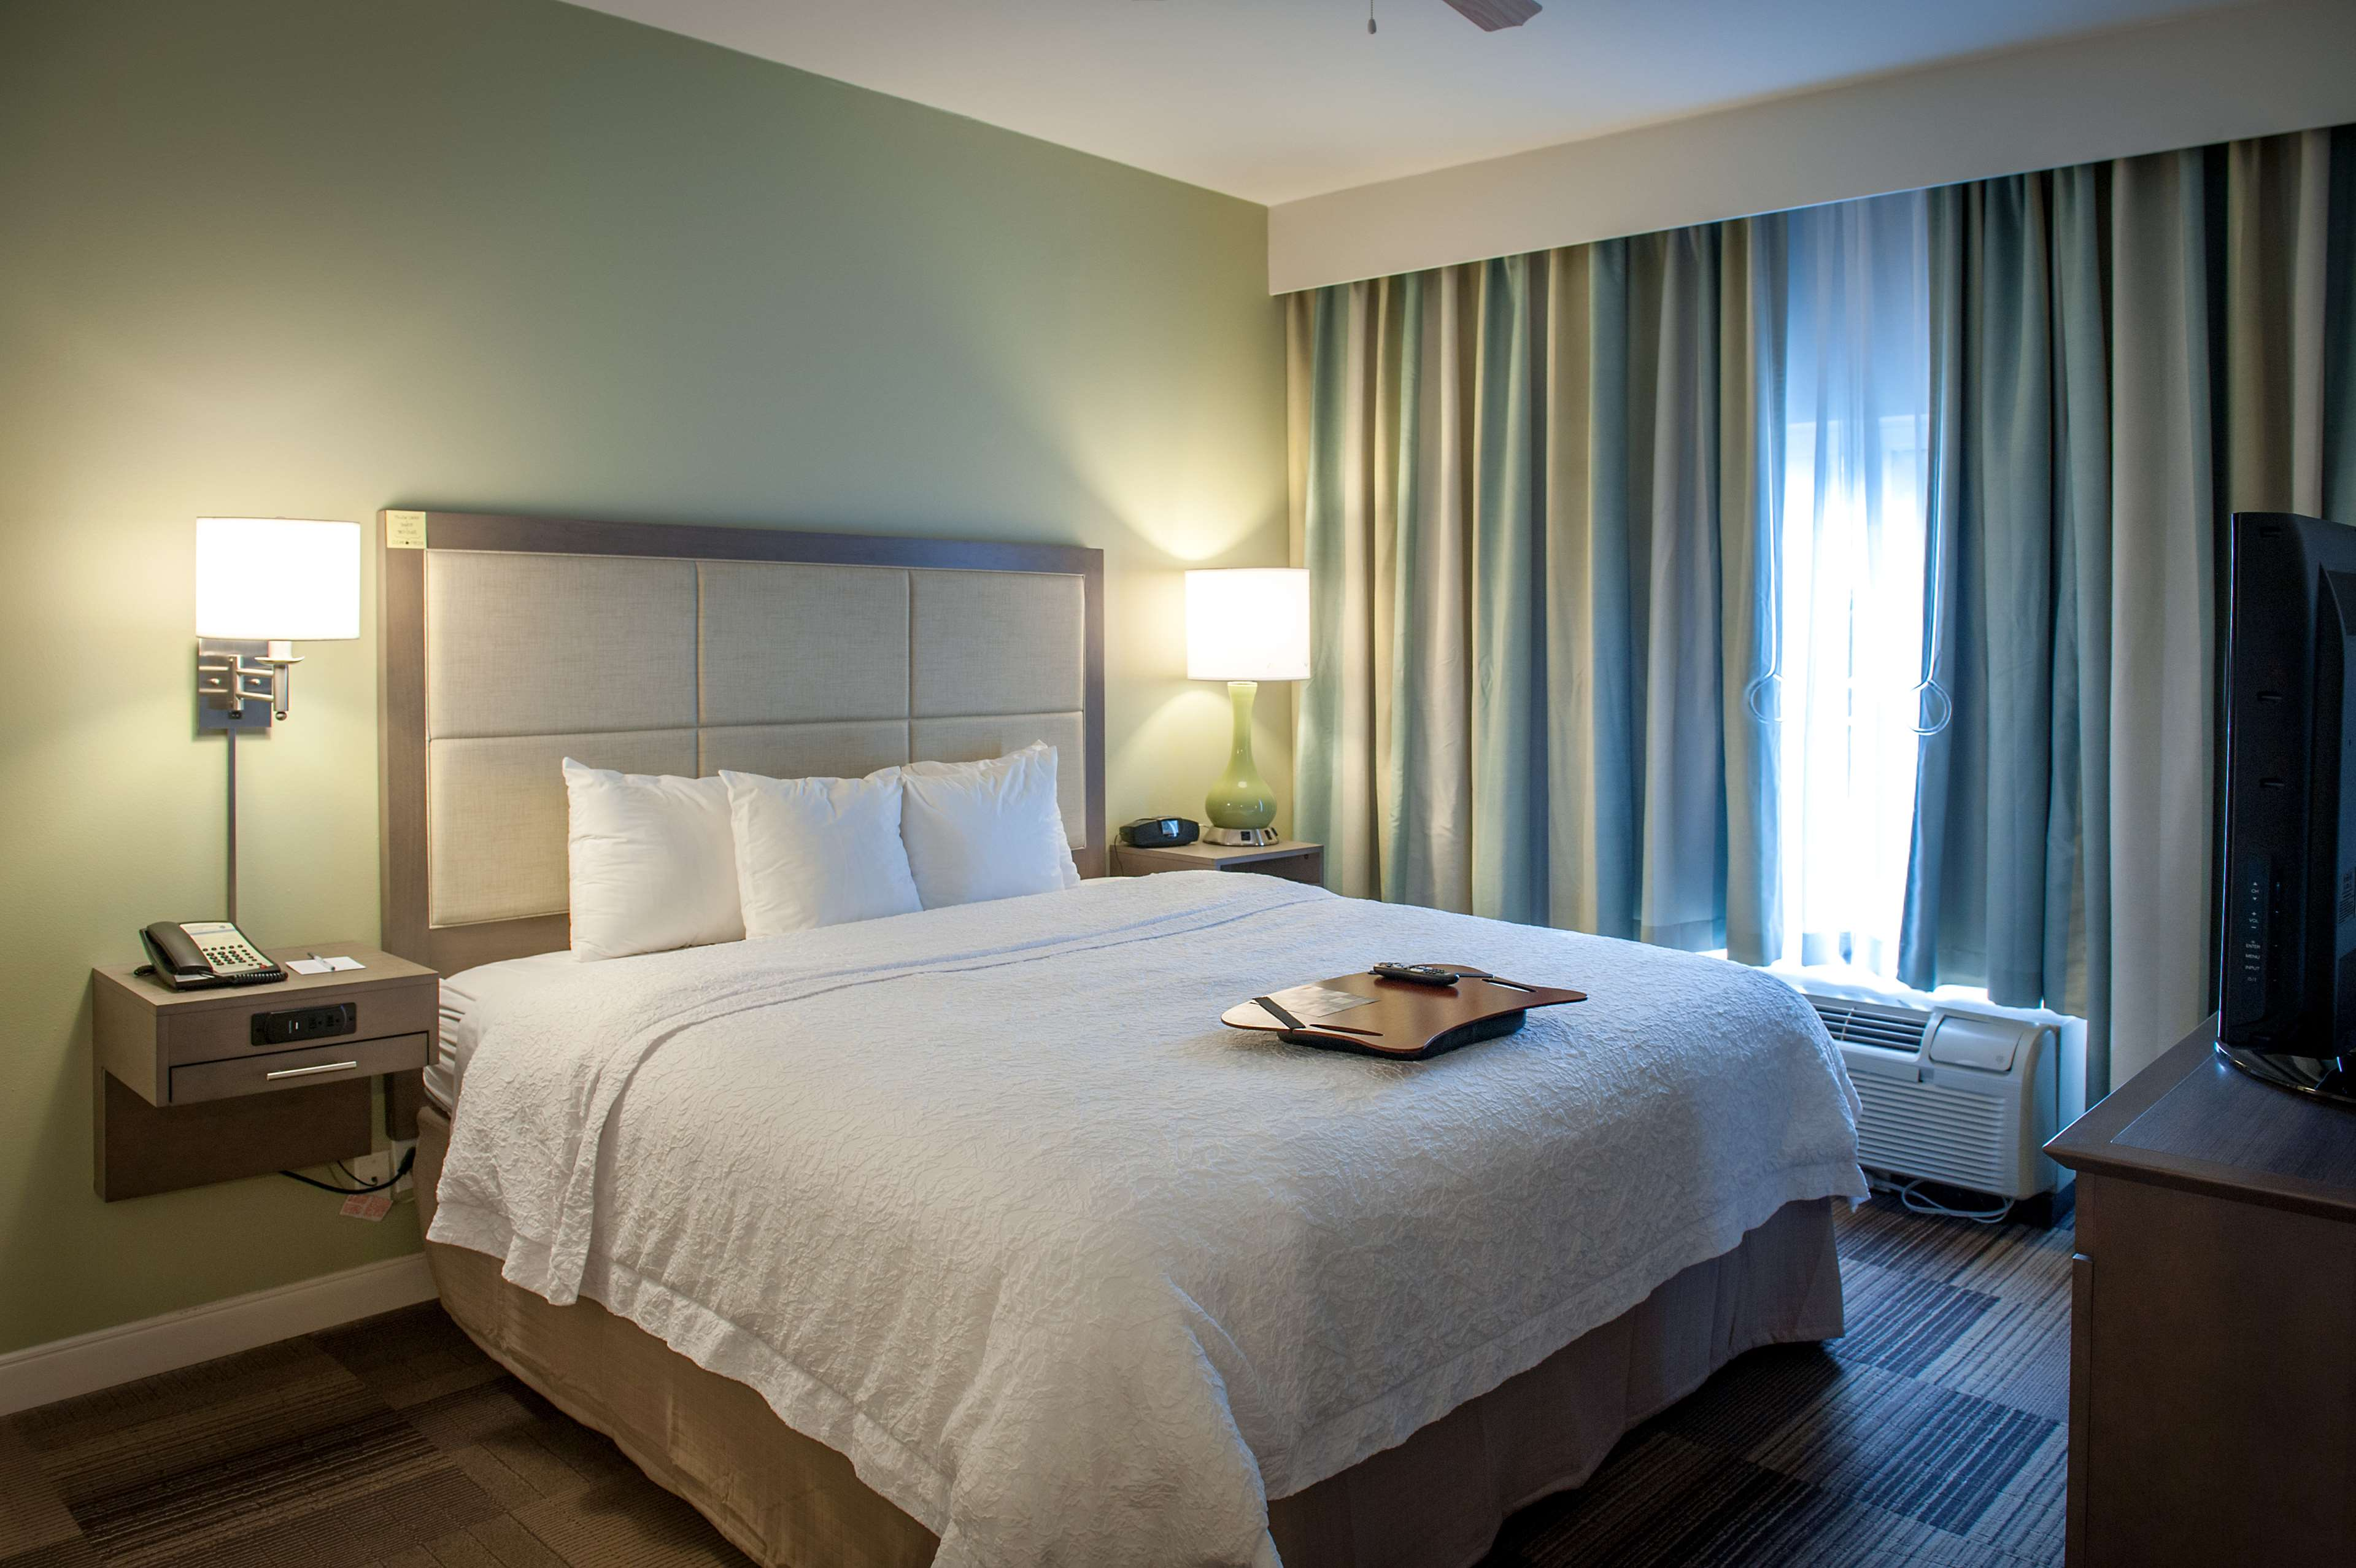 Hampton Inn & Suites New Orleans-Elmwood/Clearview Parkway Area image 22